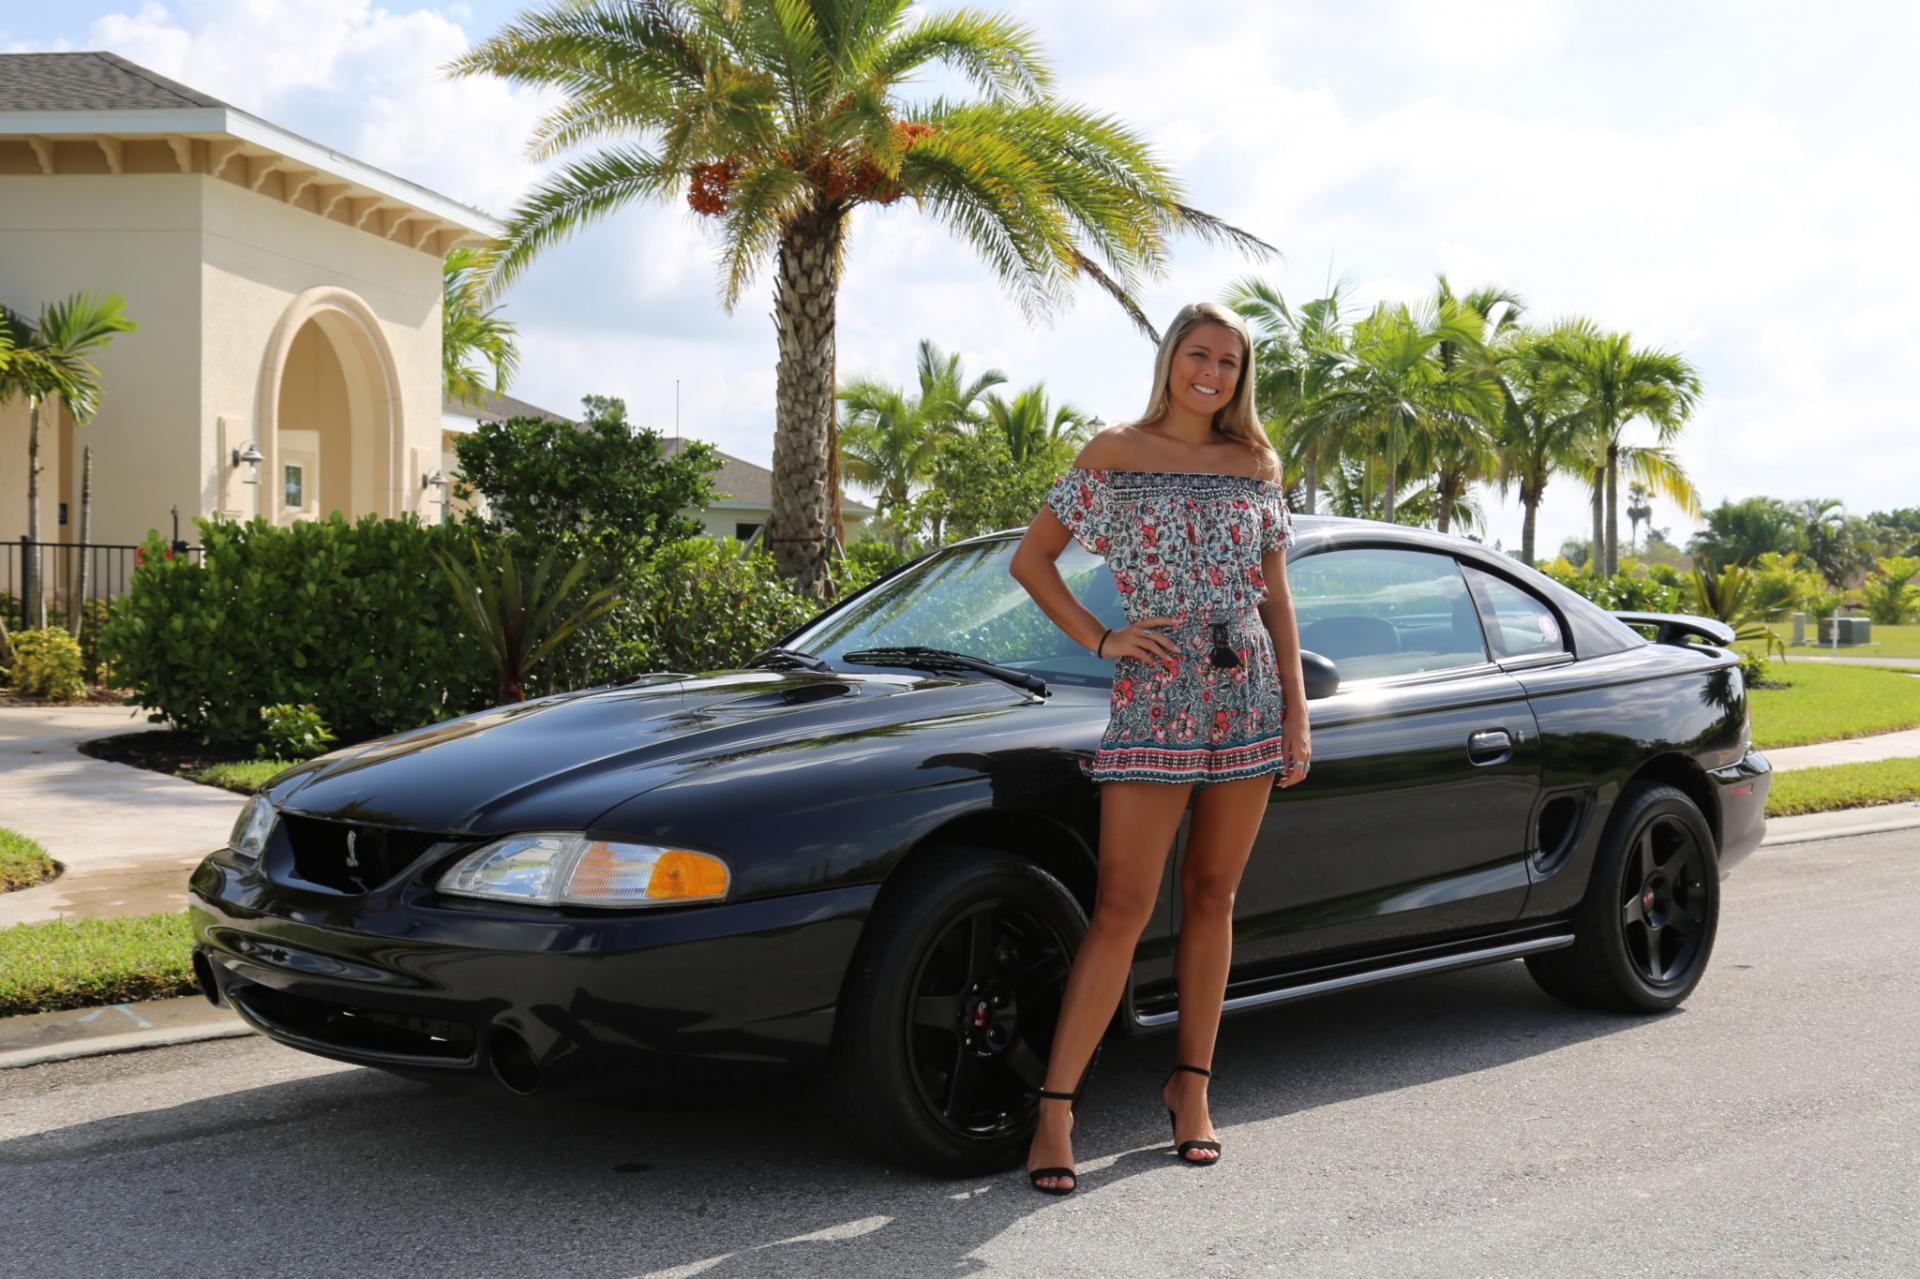 Used 1996 Mustang Cobra SVT Cobra for sale Sold at Muscle Cars for Sale Inc. in Fort Myers FL 33912 1